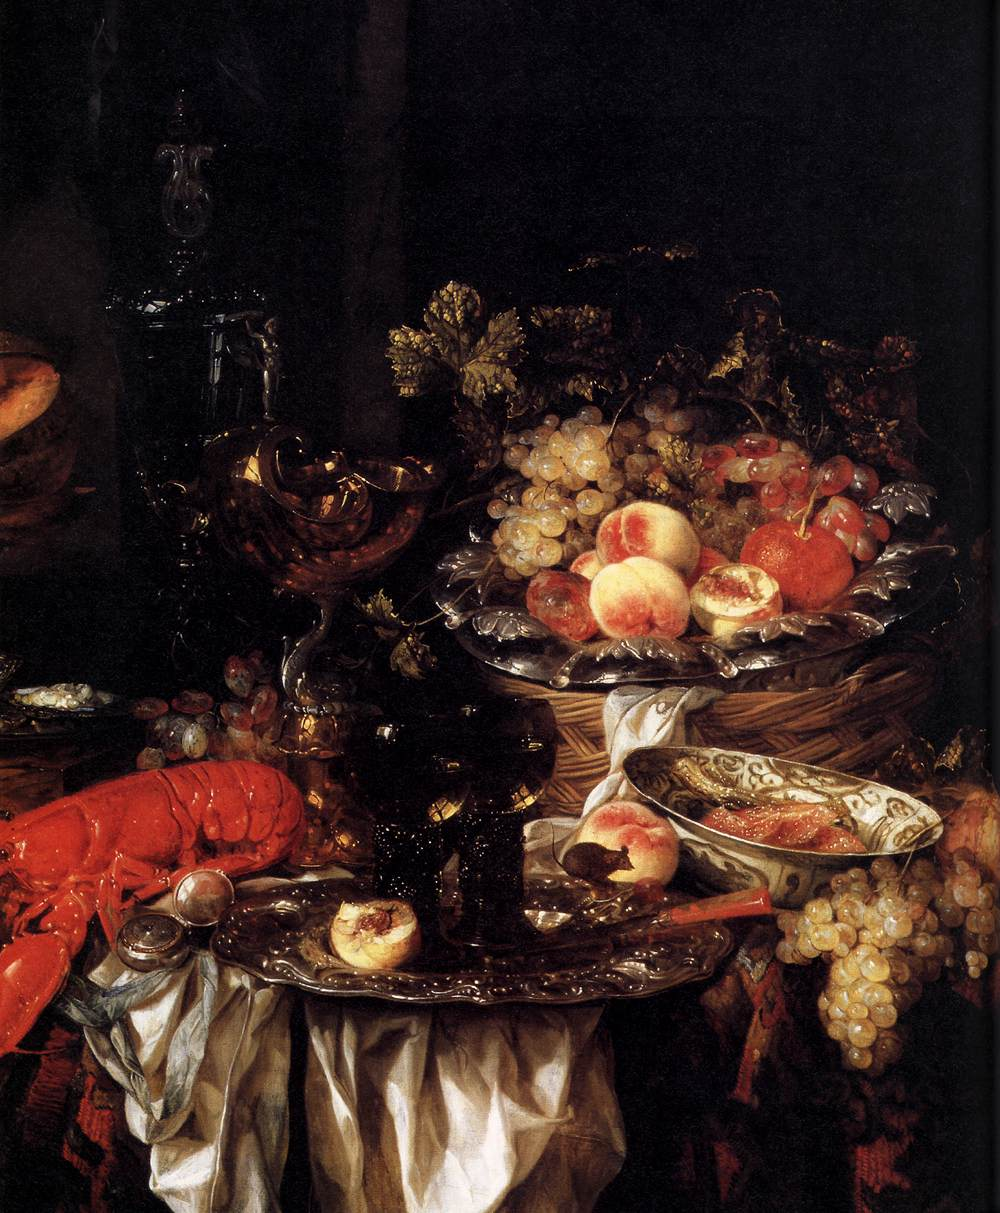 Abraham van Beyeren | Banquet Hall Still Life with a Mouse